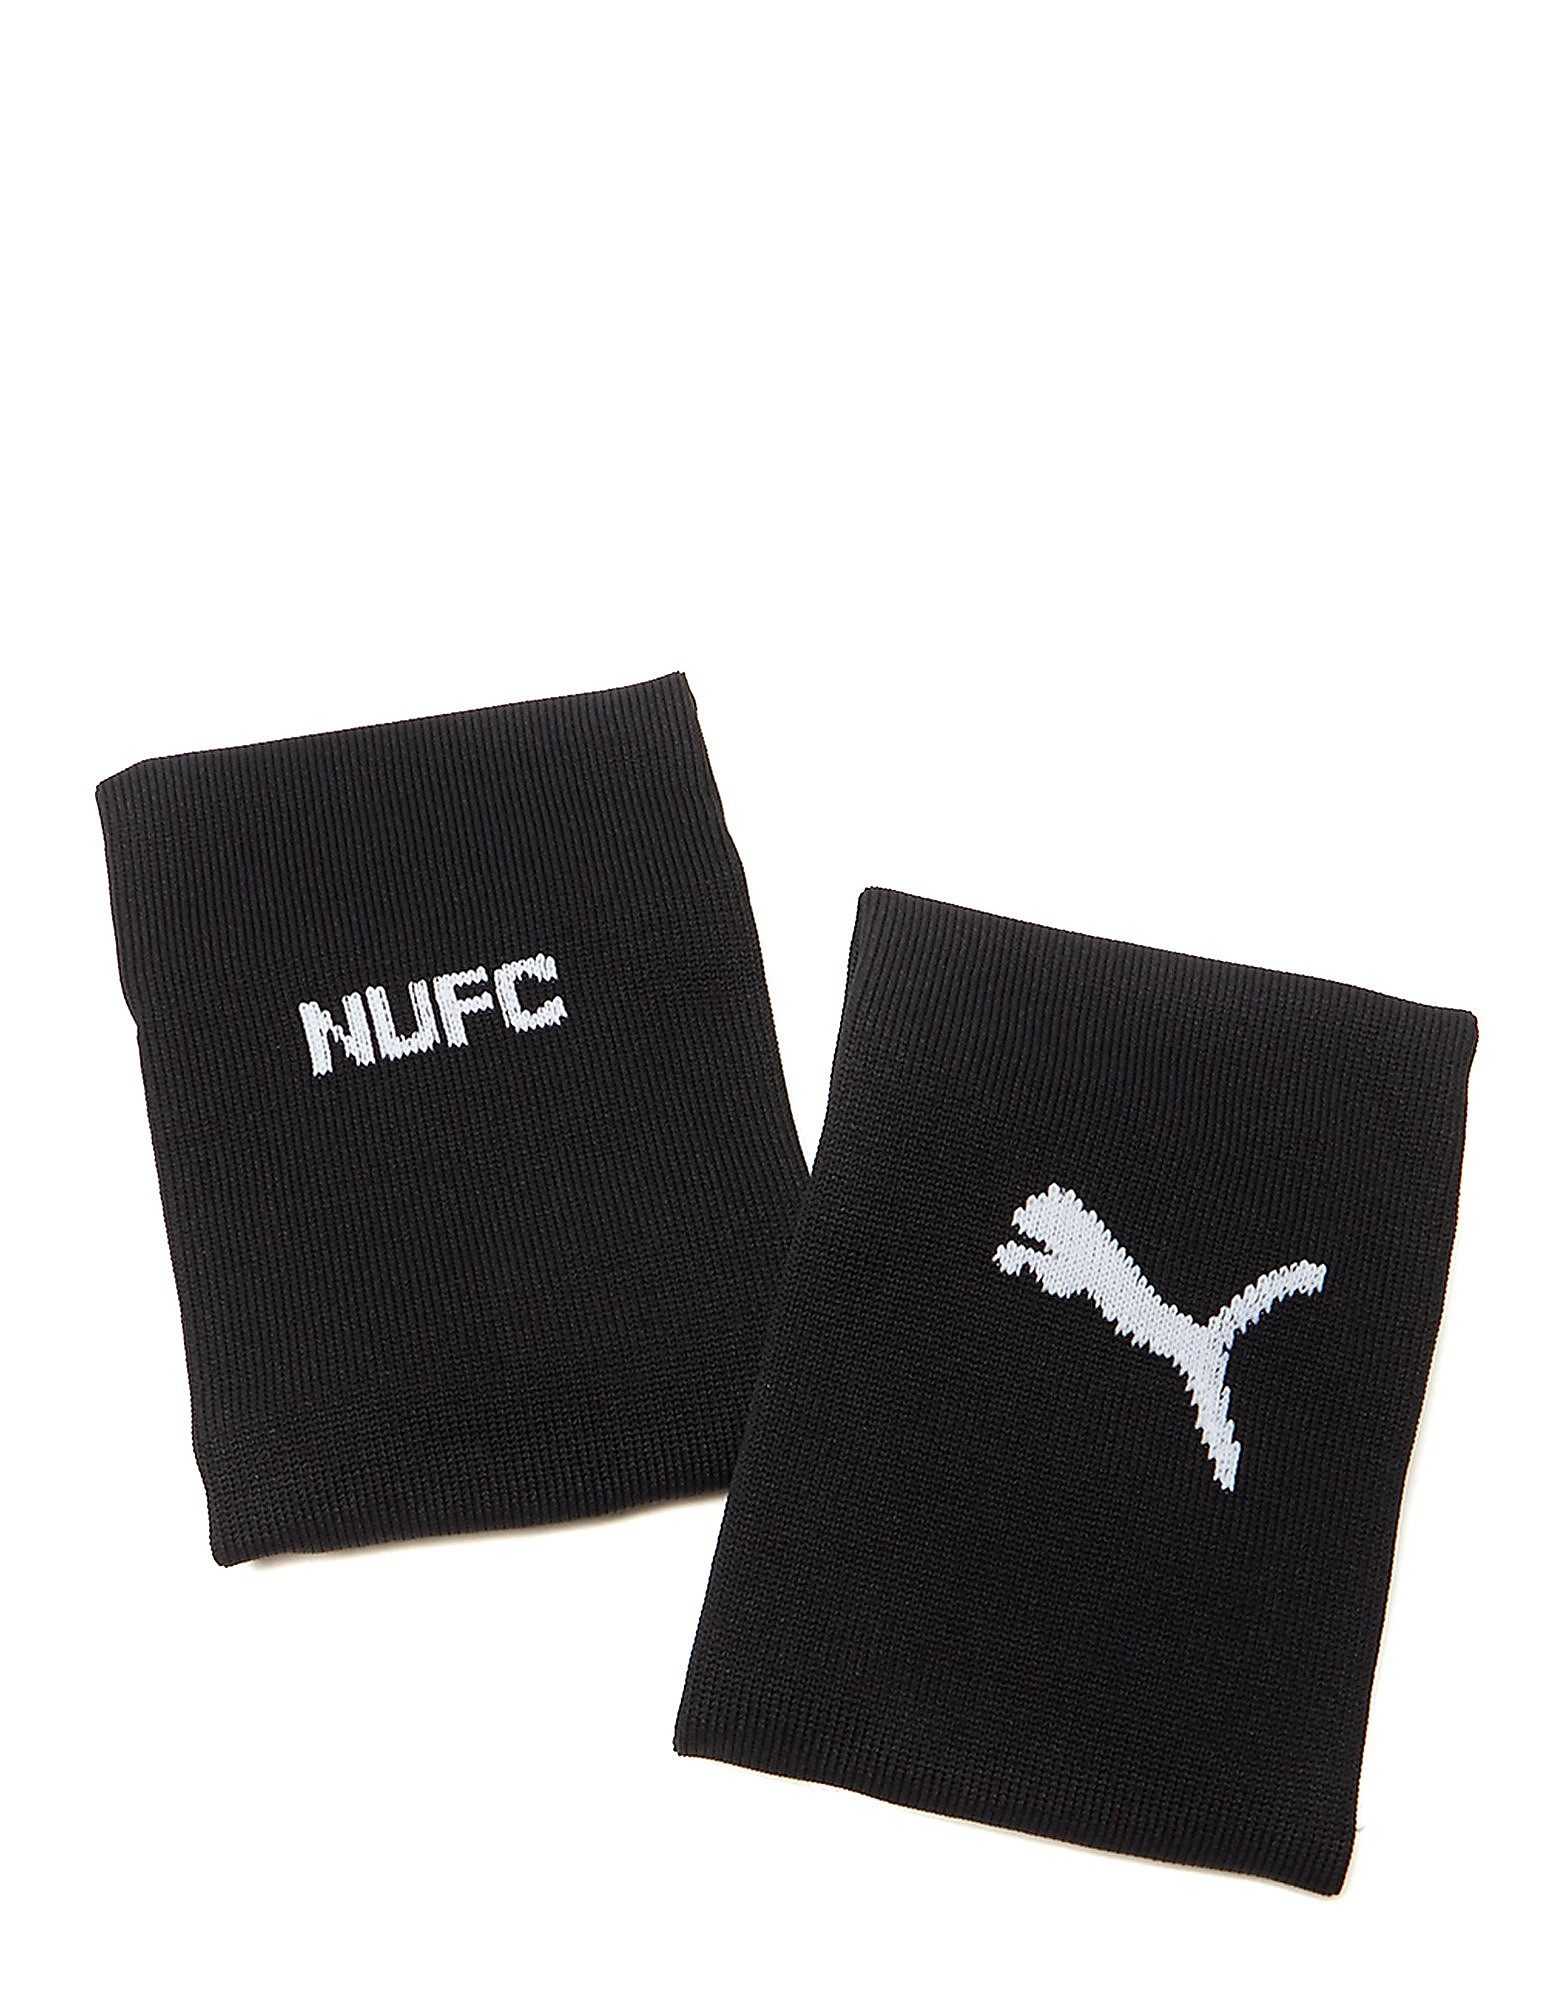 PUMA Newcastle United 2017/18 Home Socks Jnr PRE ORDER